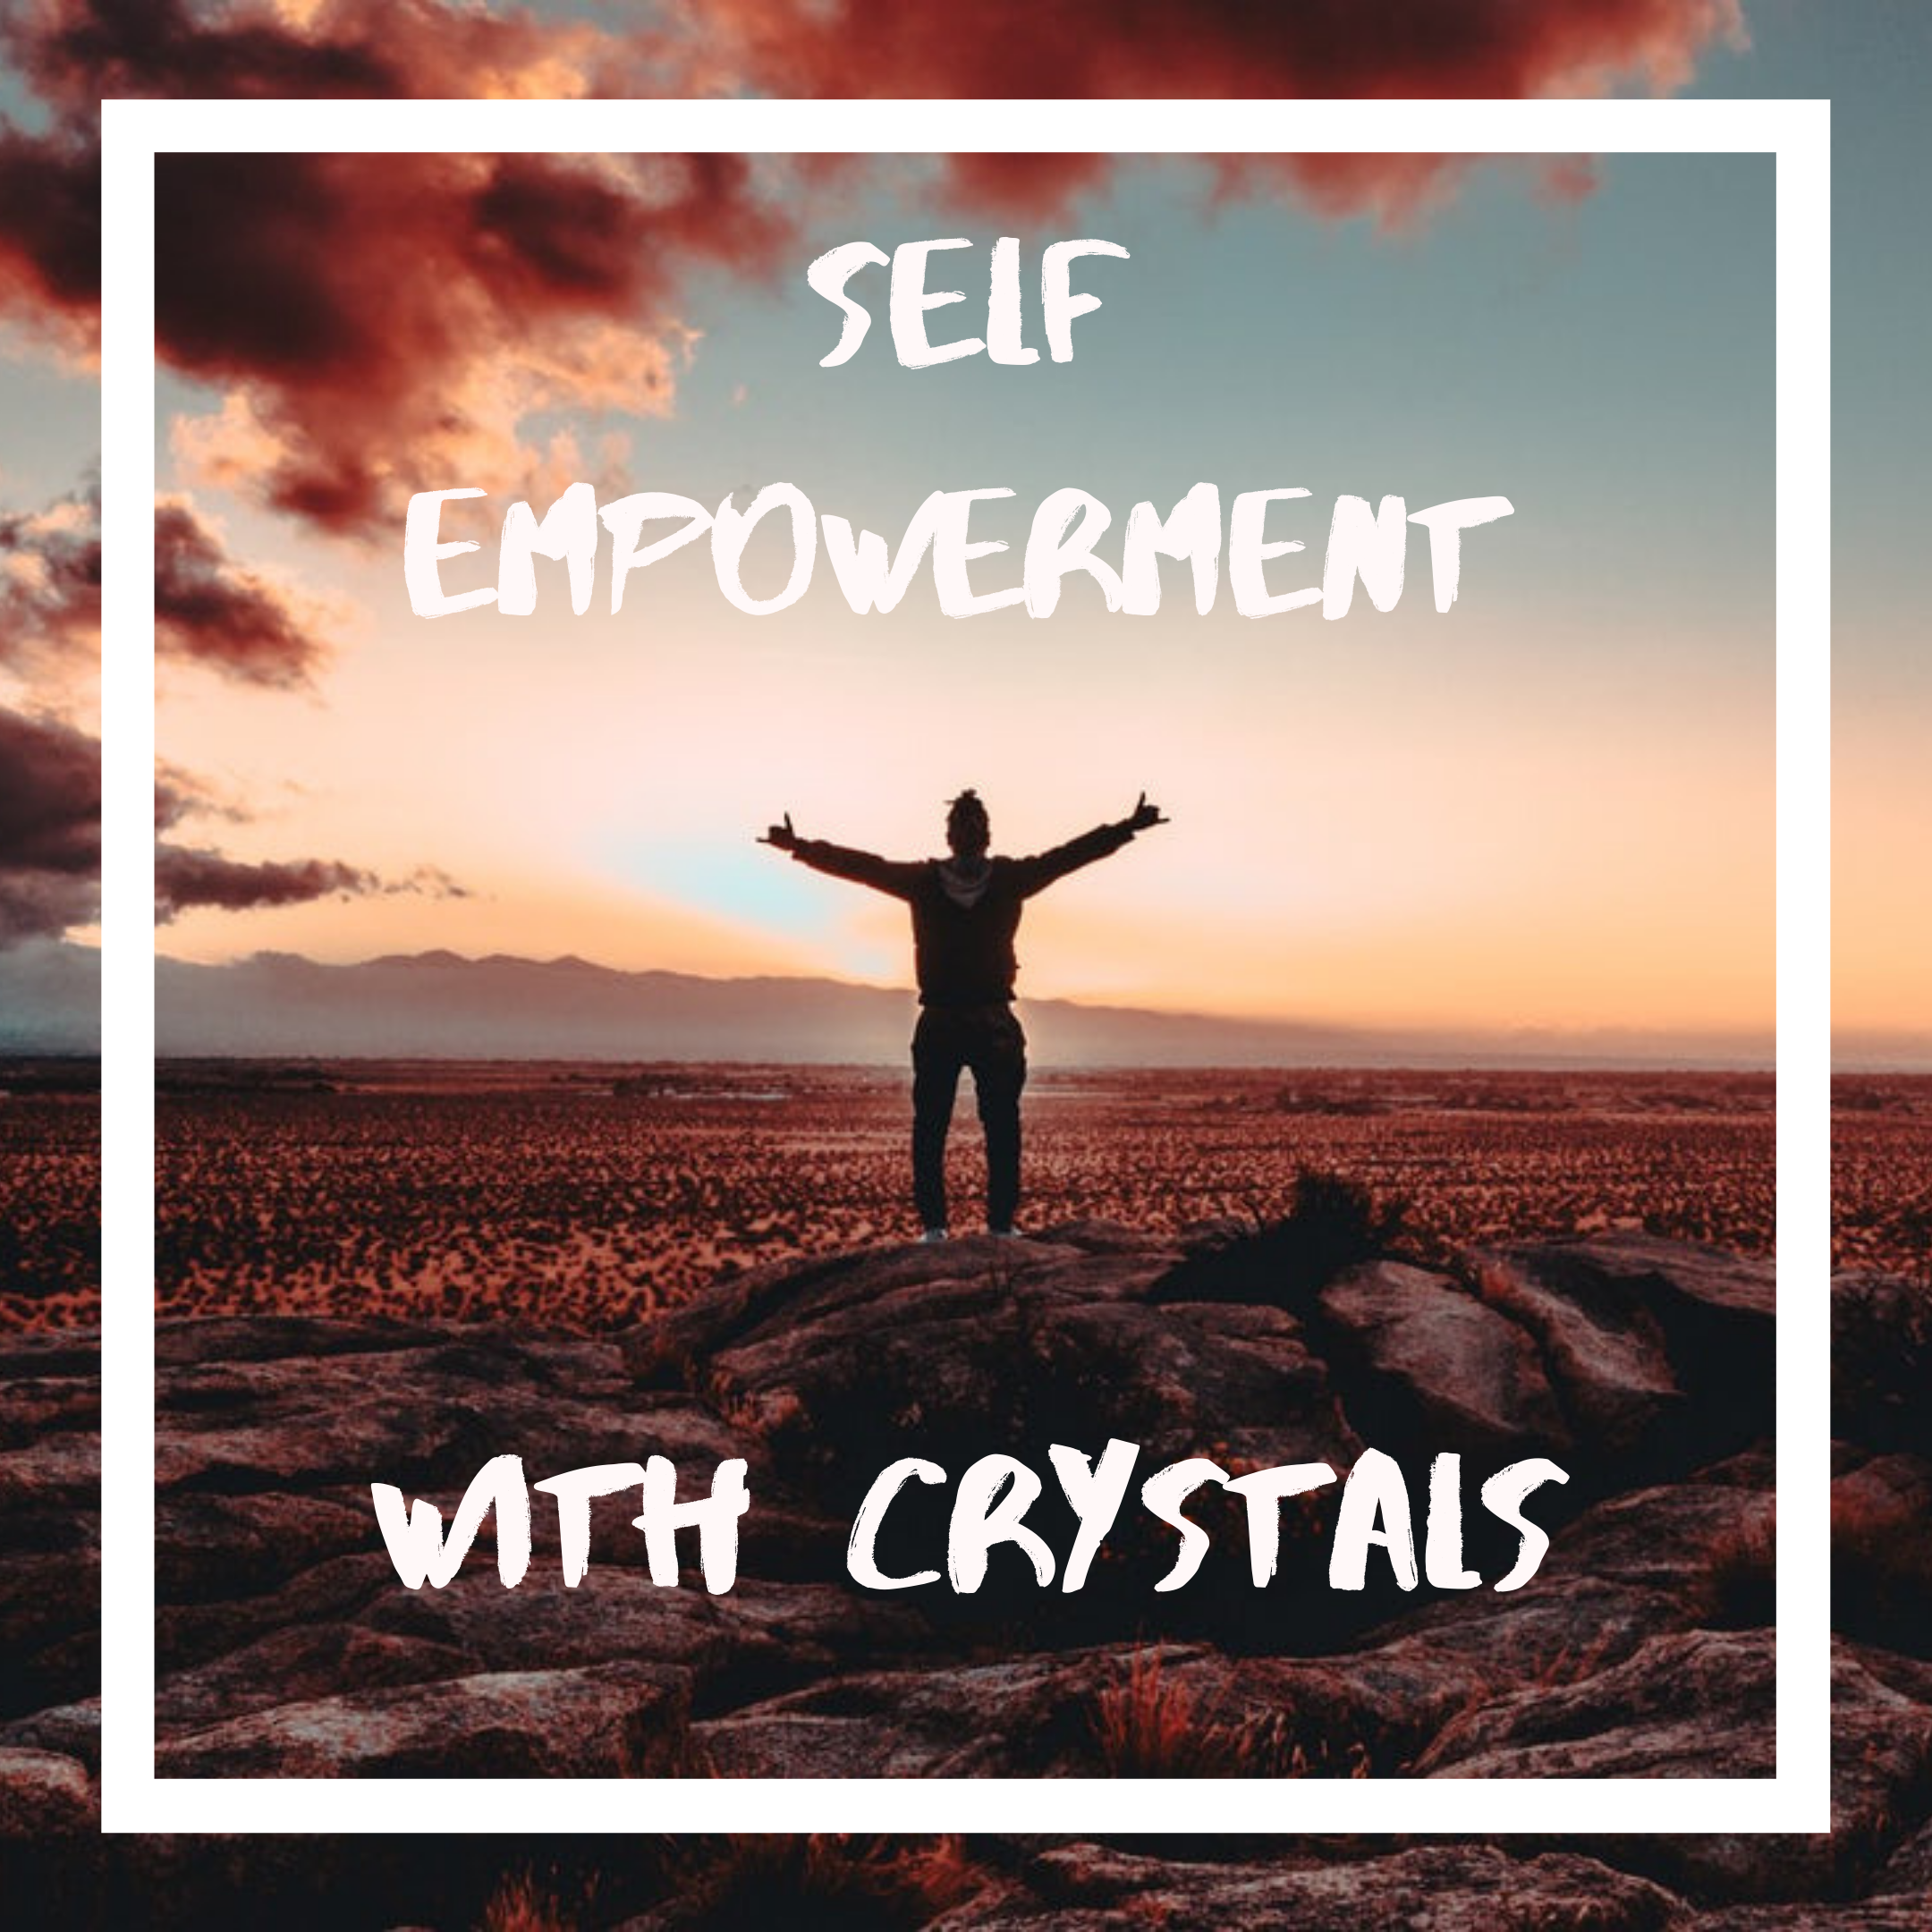 Best Crystals for Self Empowerment